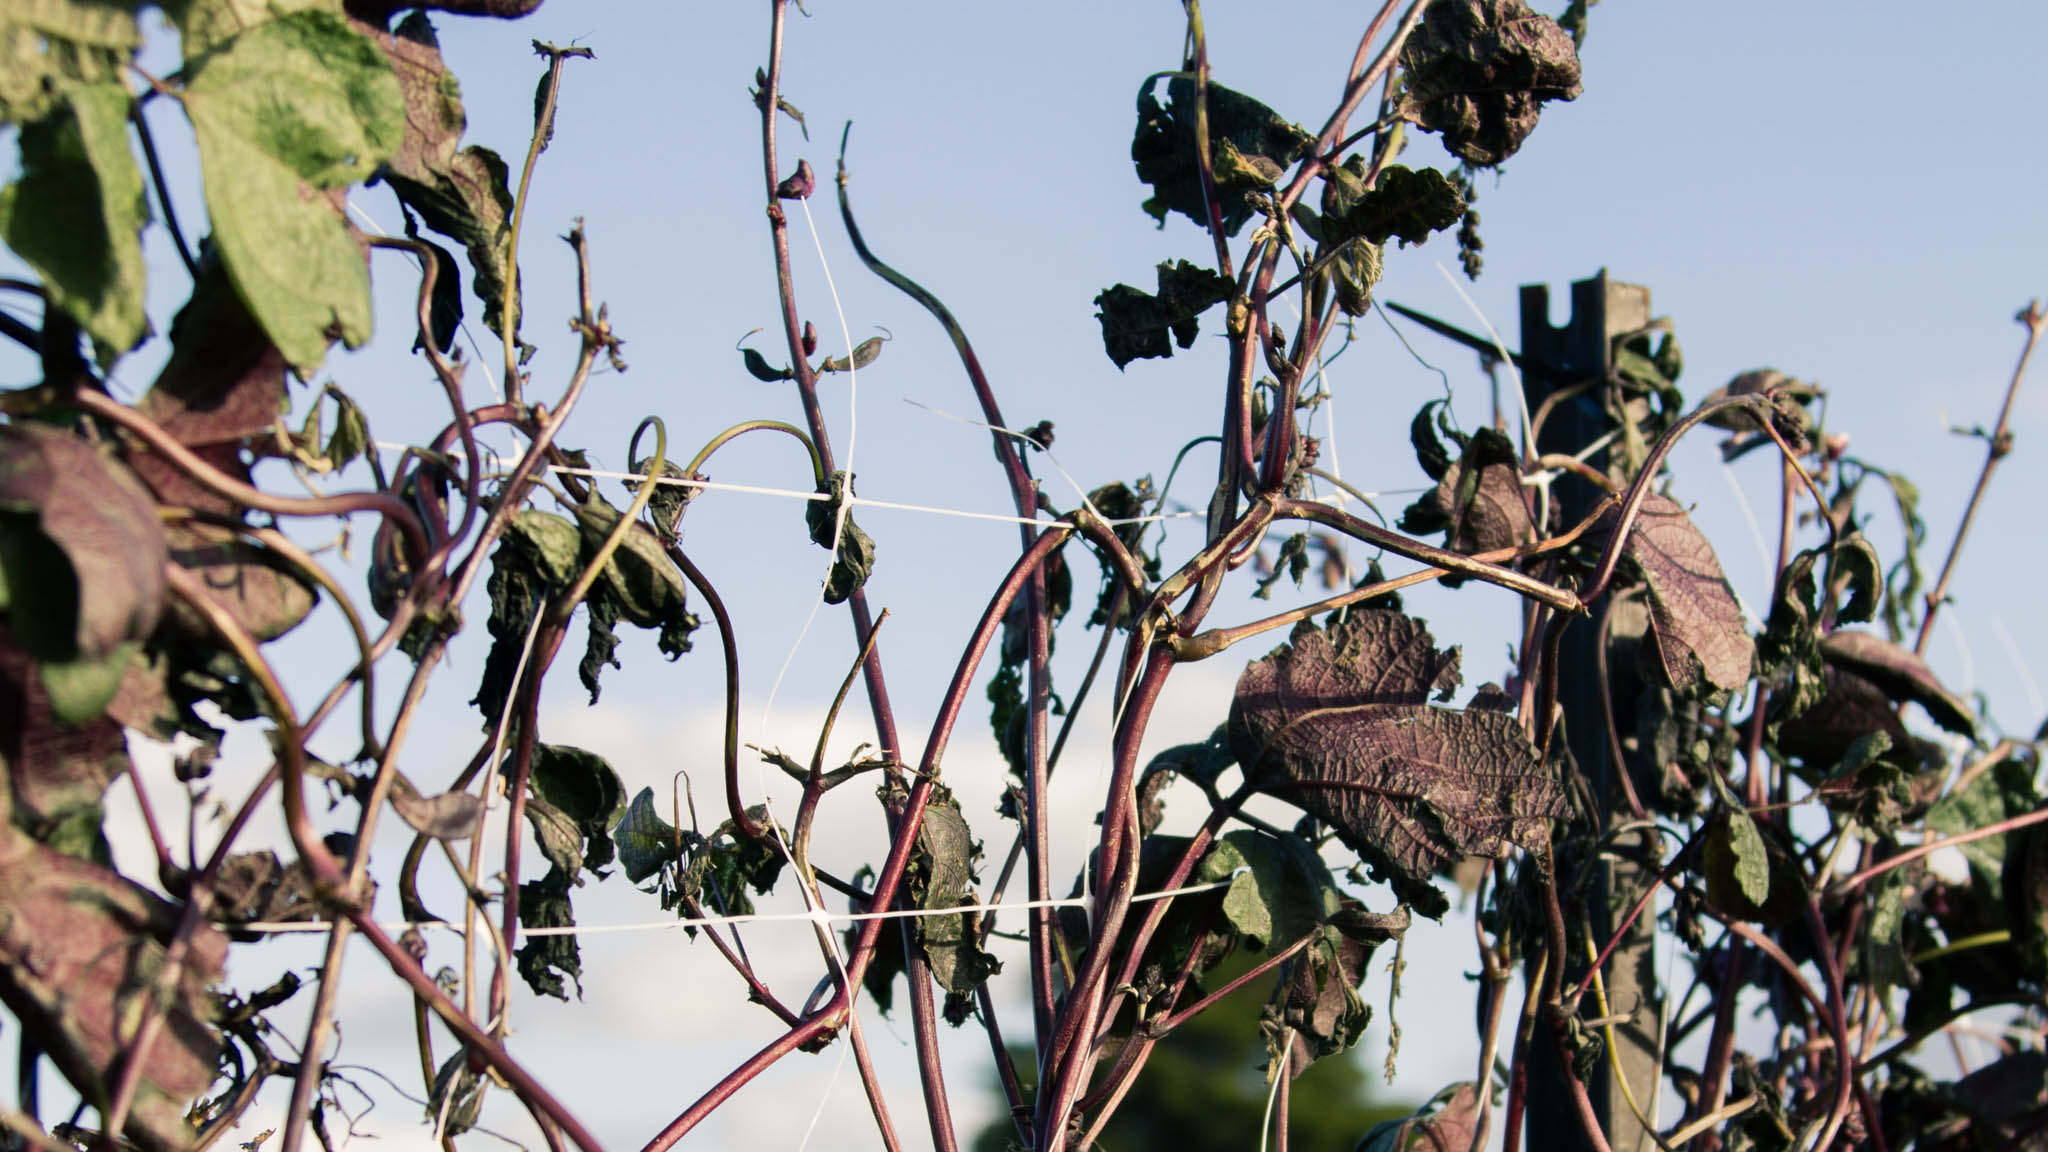 The Hyacinth Beans had sort of recovered from Fehi's shredding only to be shredded once more by Gita.